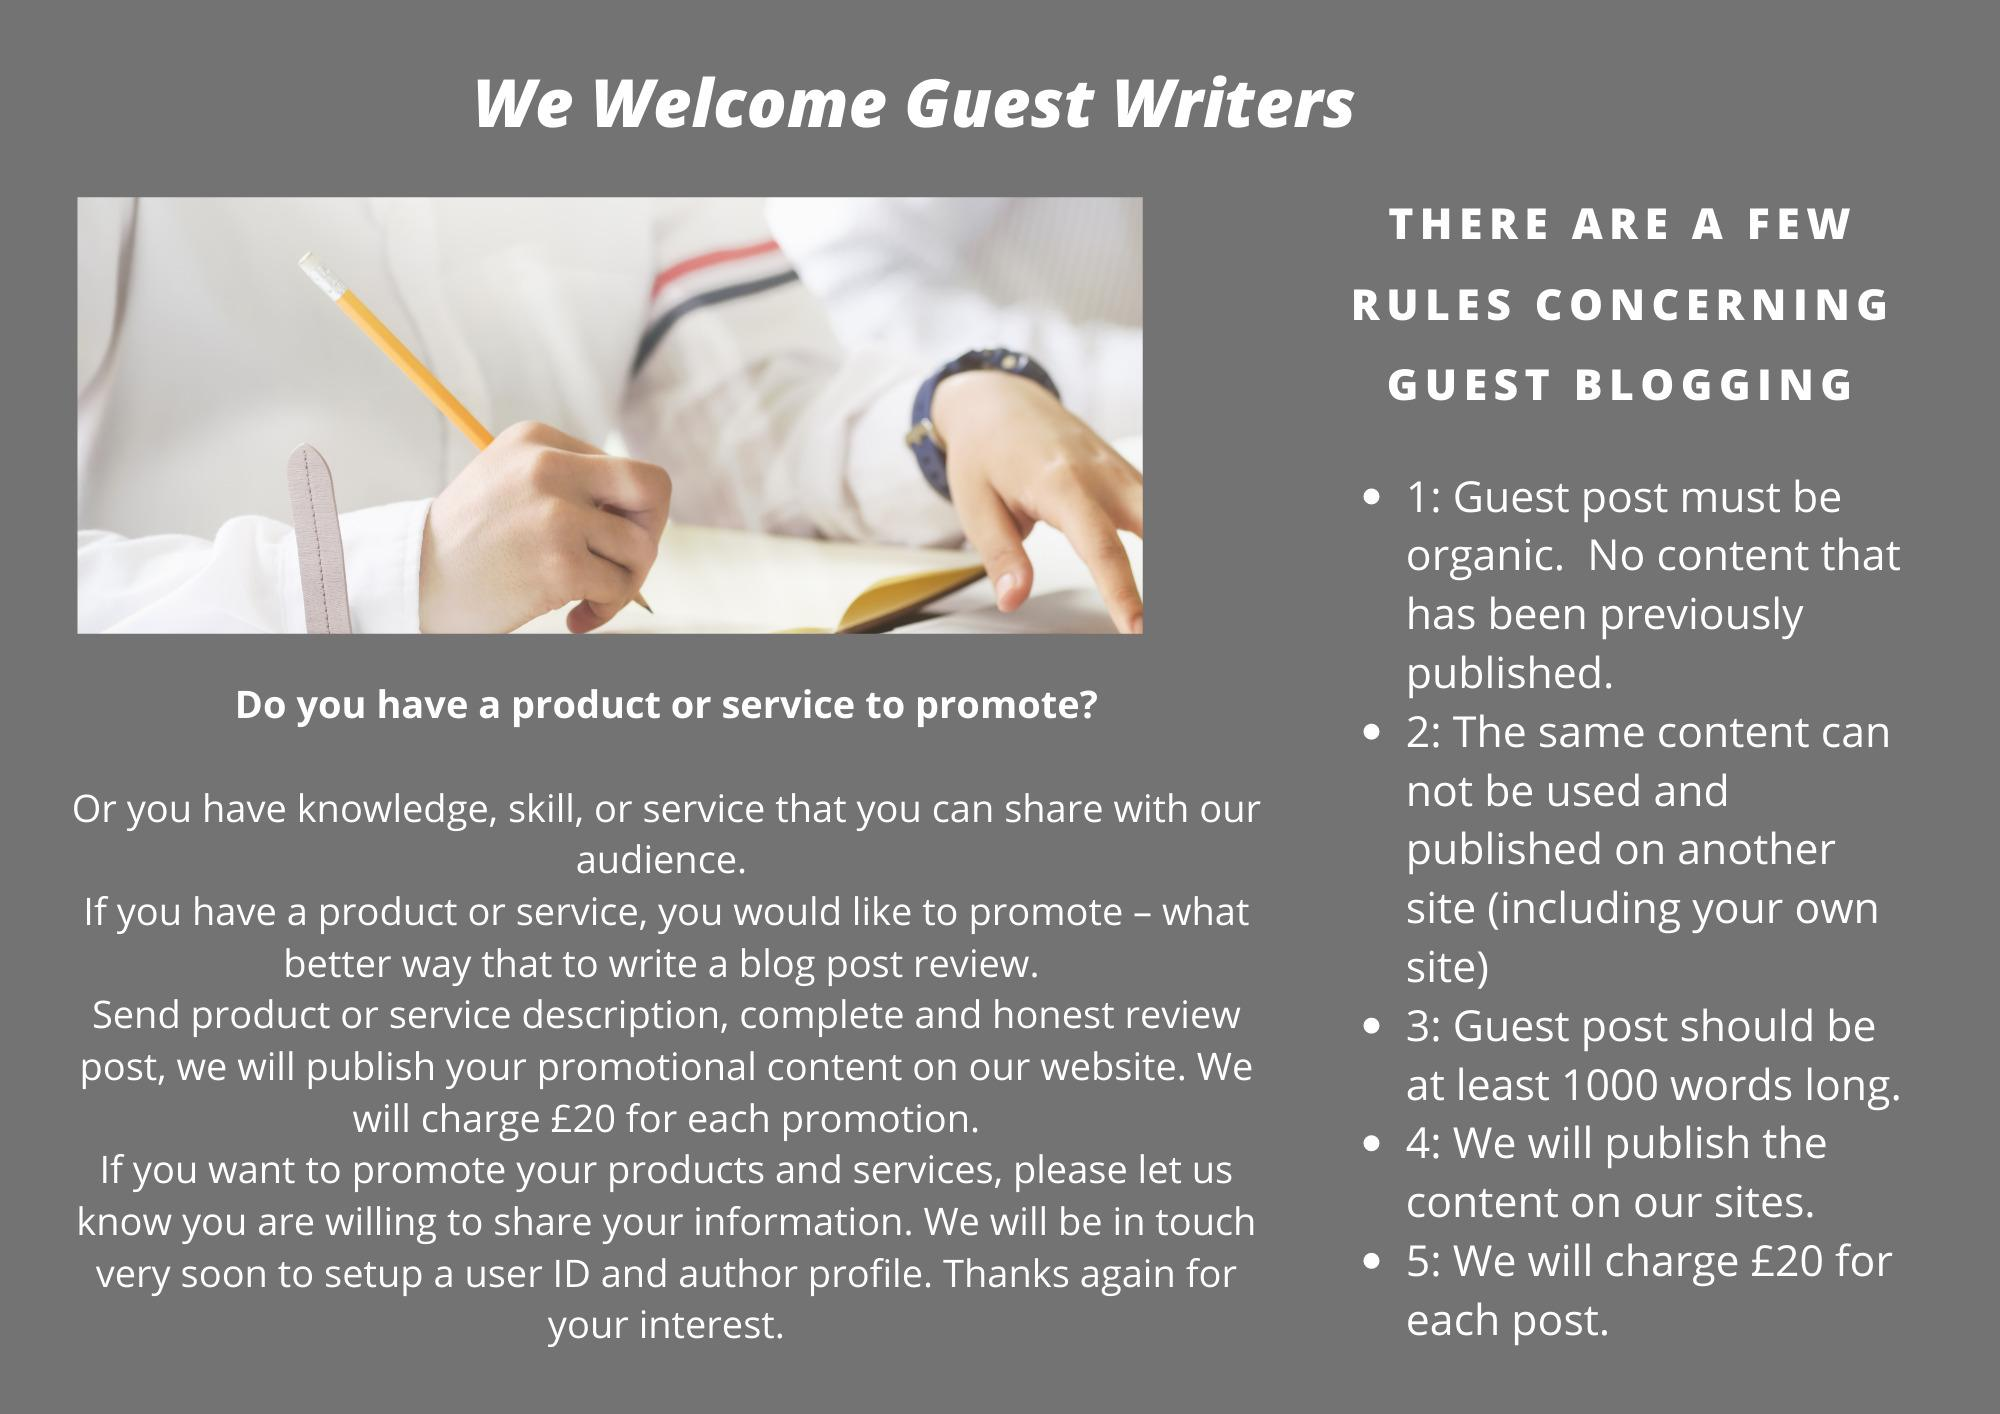 ABI welcome guest writers!